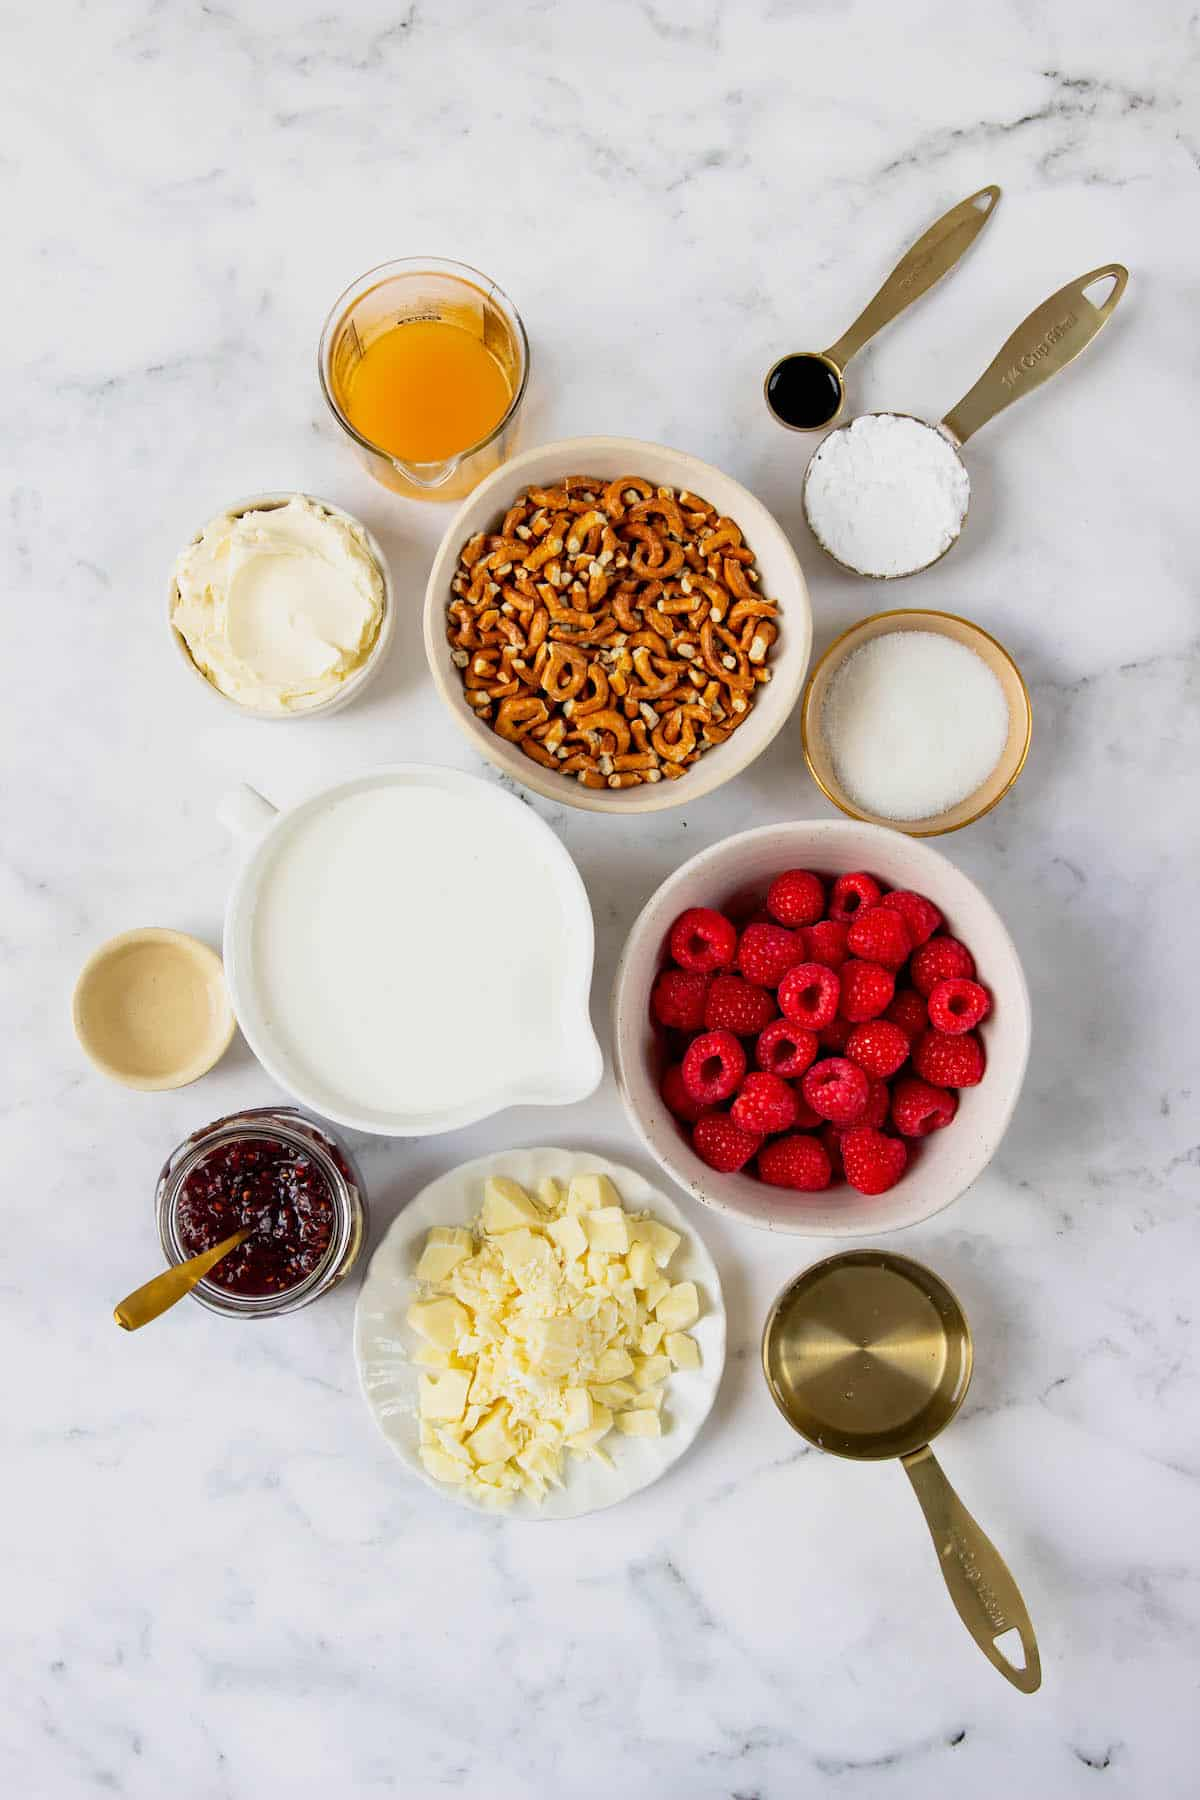 Overhead view of all the ingredients needed for frozen white chocolate raspberry dessert